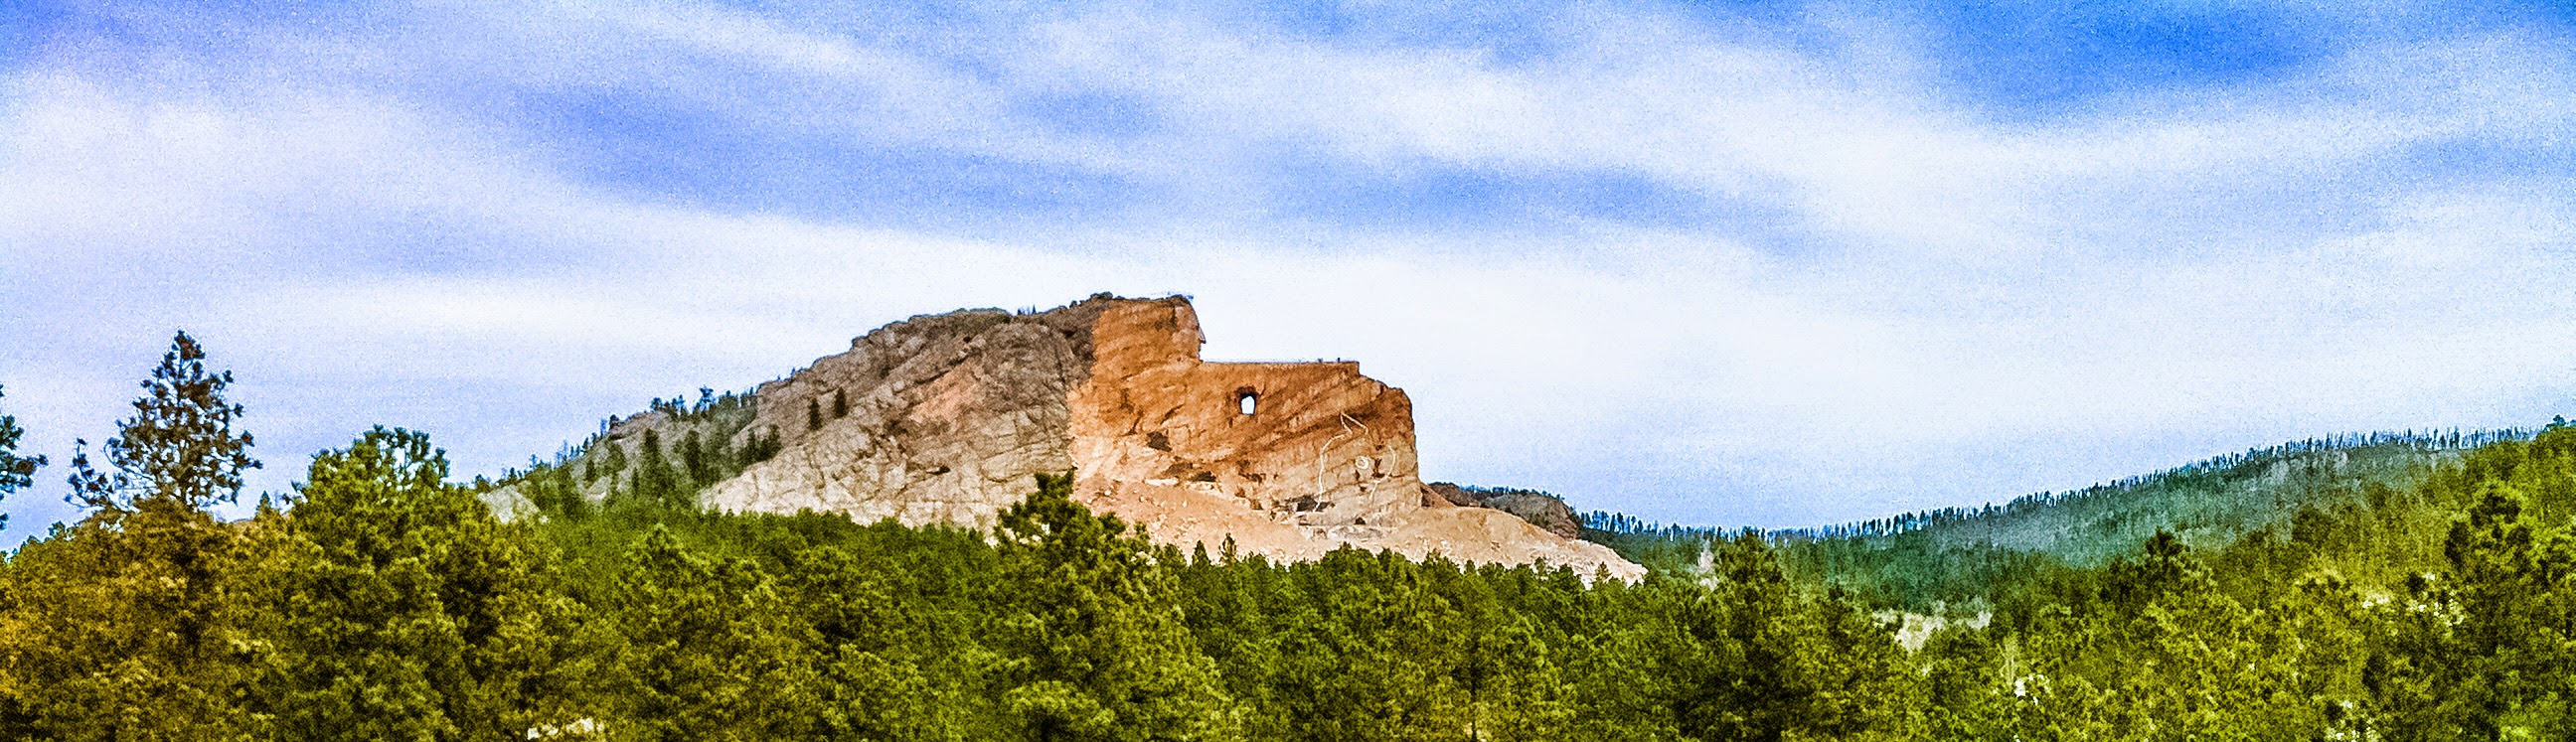 Photo: Crazy Horse Memorial A Long Time In The Making  It was 1949 when construction began on this memorial to the Native American hero, Chief Crazy Horse. The work is financed entirely by private funds. No government funds will be accepted.  The work so far was begun by the late sculptor Korczak Ziolkowski who was invited by Lakota Chief Henry Standing Bear and other Native American Elders to carve the mountain into the memorial. Ziolkowski's family has carried on the work since his death.  It appears that our visit missed a dynamite blast by just three days. That would have been something to see.  The Memorial is owned and operated by a non-profit foundation with the goal of not only completing the sculpting of the mountain, but the establishment of a Native American education complex and medical training center for Native Americans. More information is available here:  http://crazyhorsememorial.org/about-us/   This iPhone photo is an example of why you don't want to leave your main camera with its 36-200 zoom lens sitting on a chair in your living room when rushing out the door for a, possibly, once-in-a-lifetime visit to an historical area. Oh well. next time. Minimal processing done in #Lightroom5   #Travel   #CrazyHorse   #SouthDakota   #MountRushmore   #RapidCity     #FFA